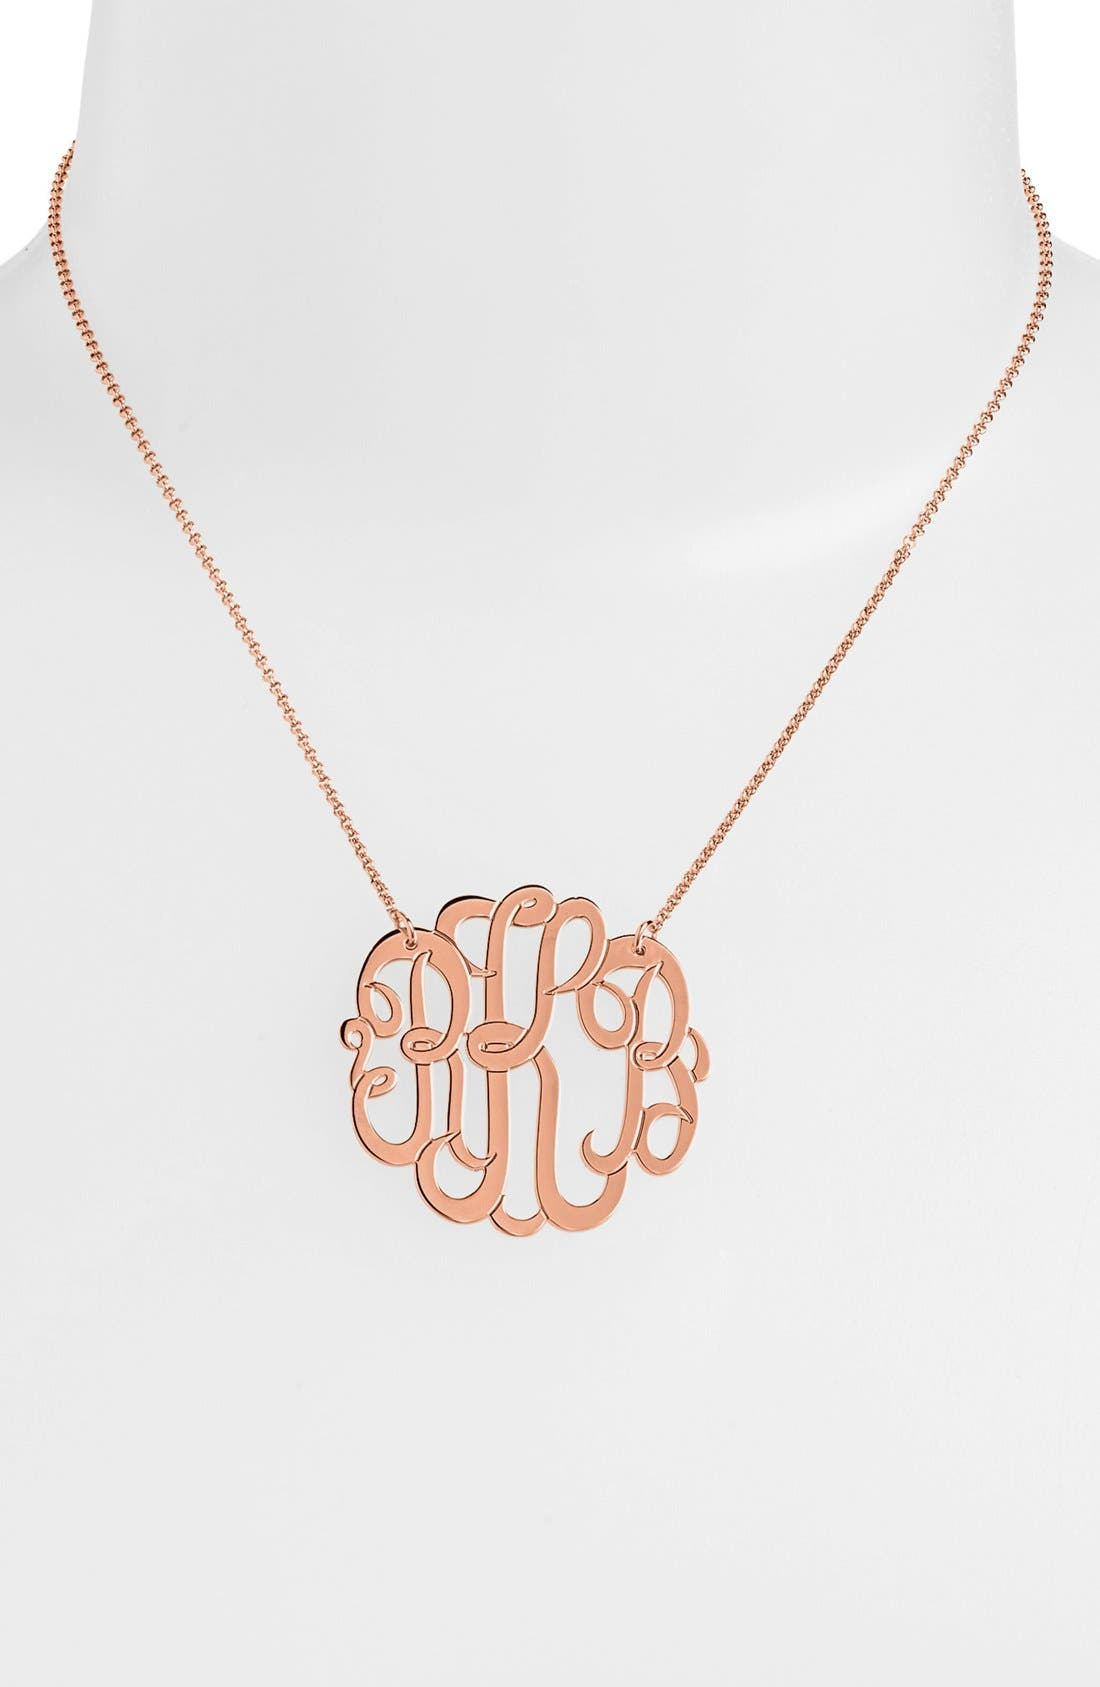 Personalized Large 3-Initial Letter Monogram Necklace,                         Main,                         color, Rose Gold